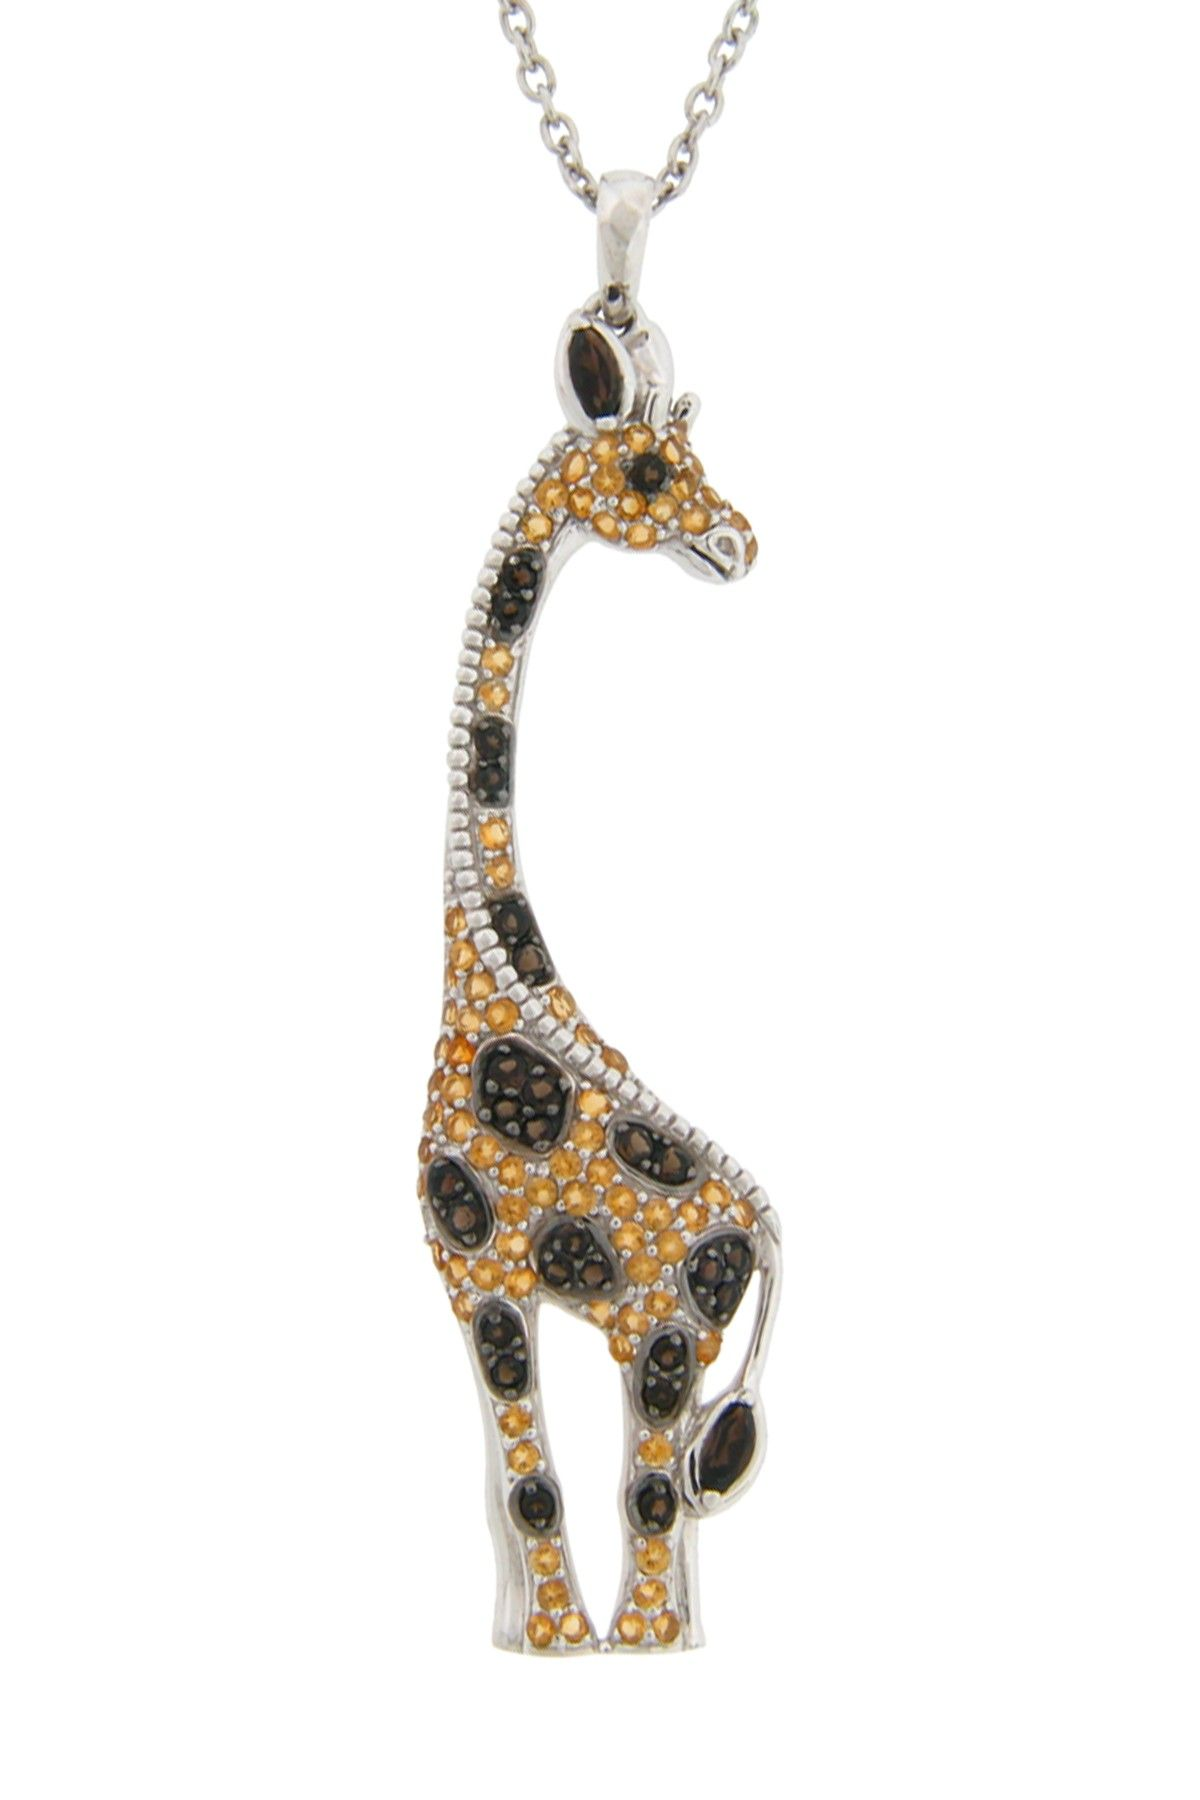 pendant short mother chain and item son in long inches giraffe fashion necklaces jewelry necklace from for women